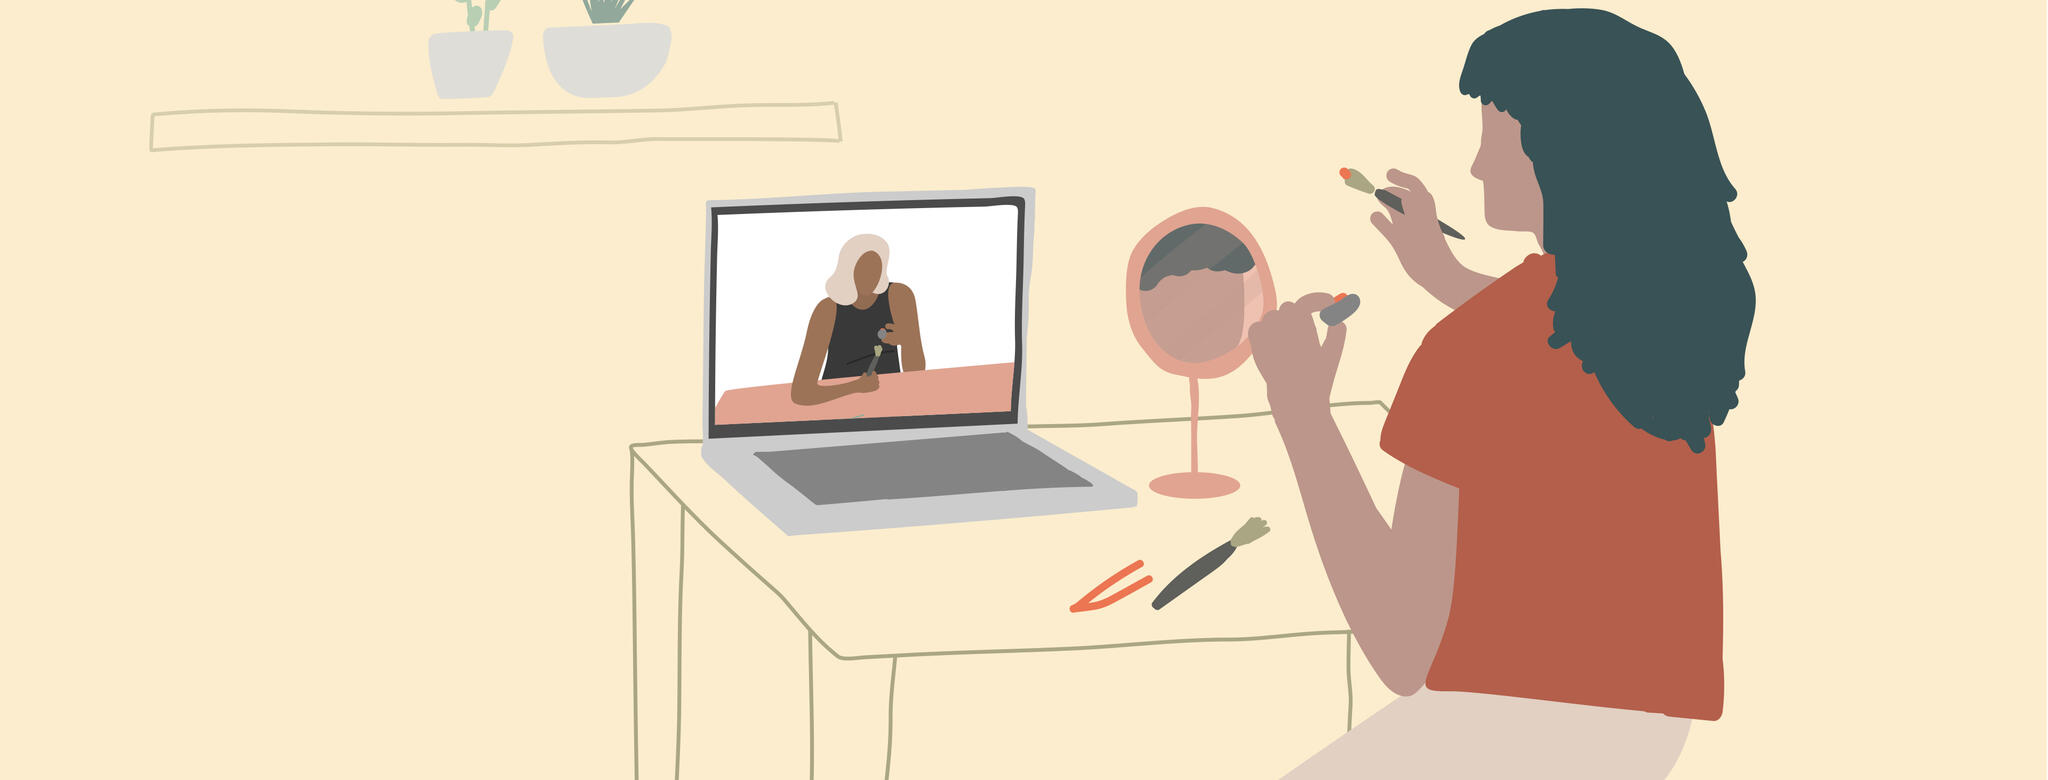 Drawing of a woman at a vanity doing a virtual makeup tutorial